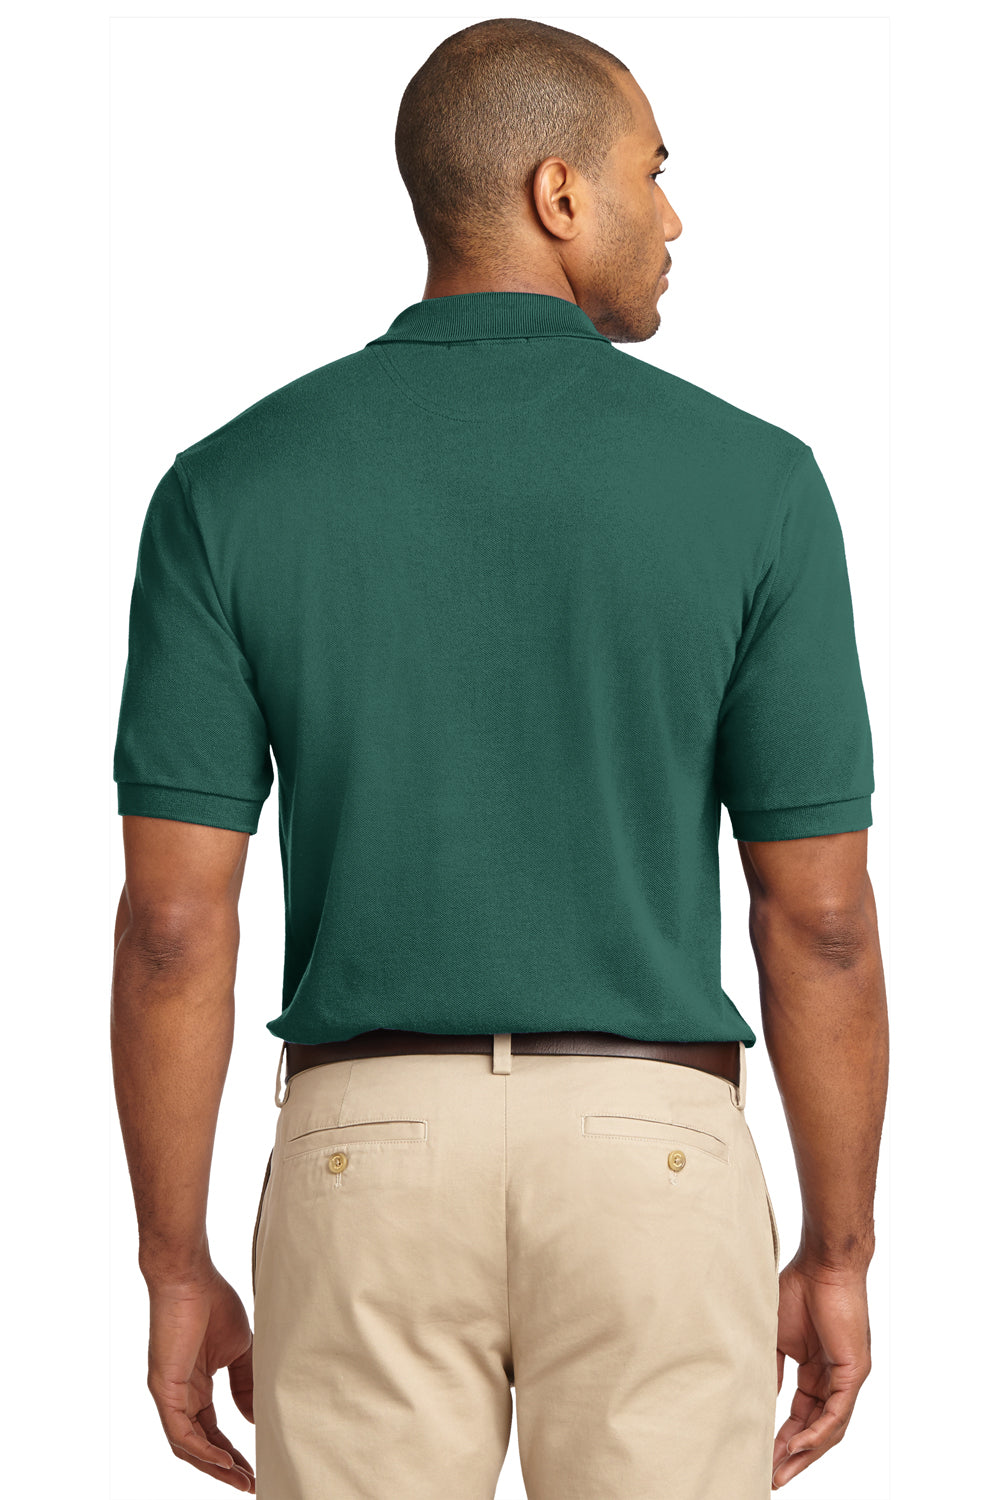 Port Authority K420 Mens Short Sleeve Polo Shirt Forest Green Back